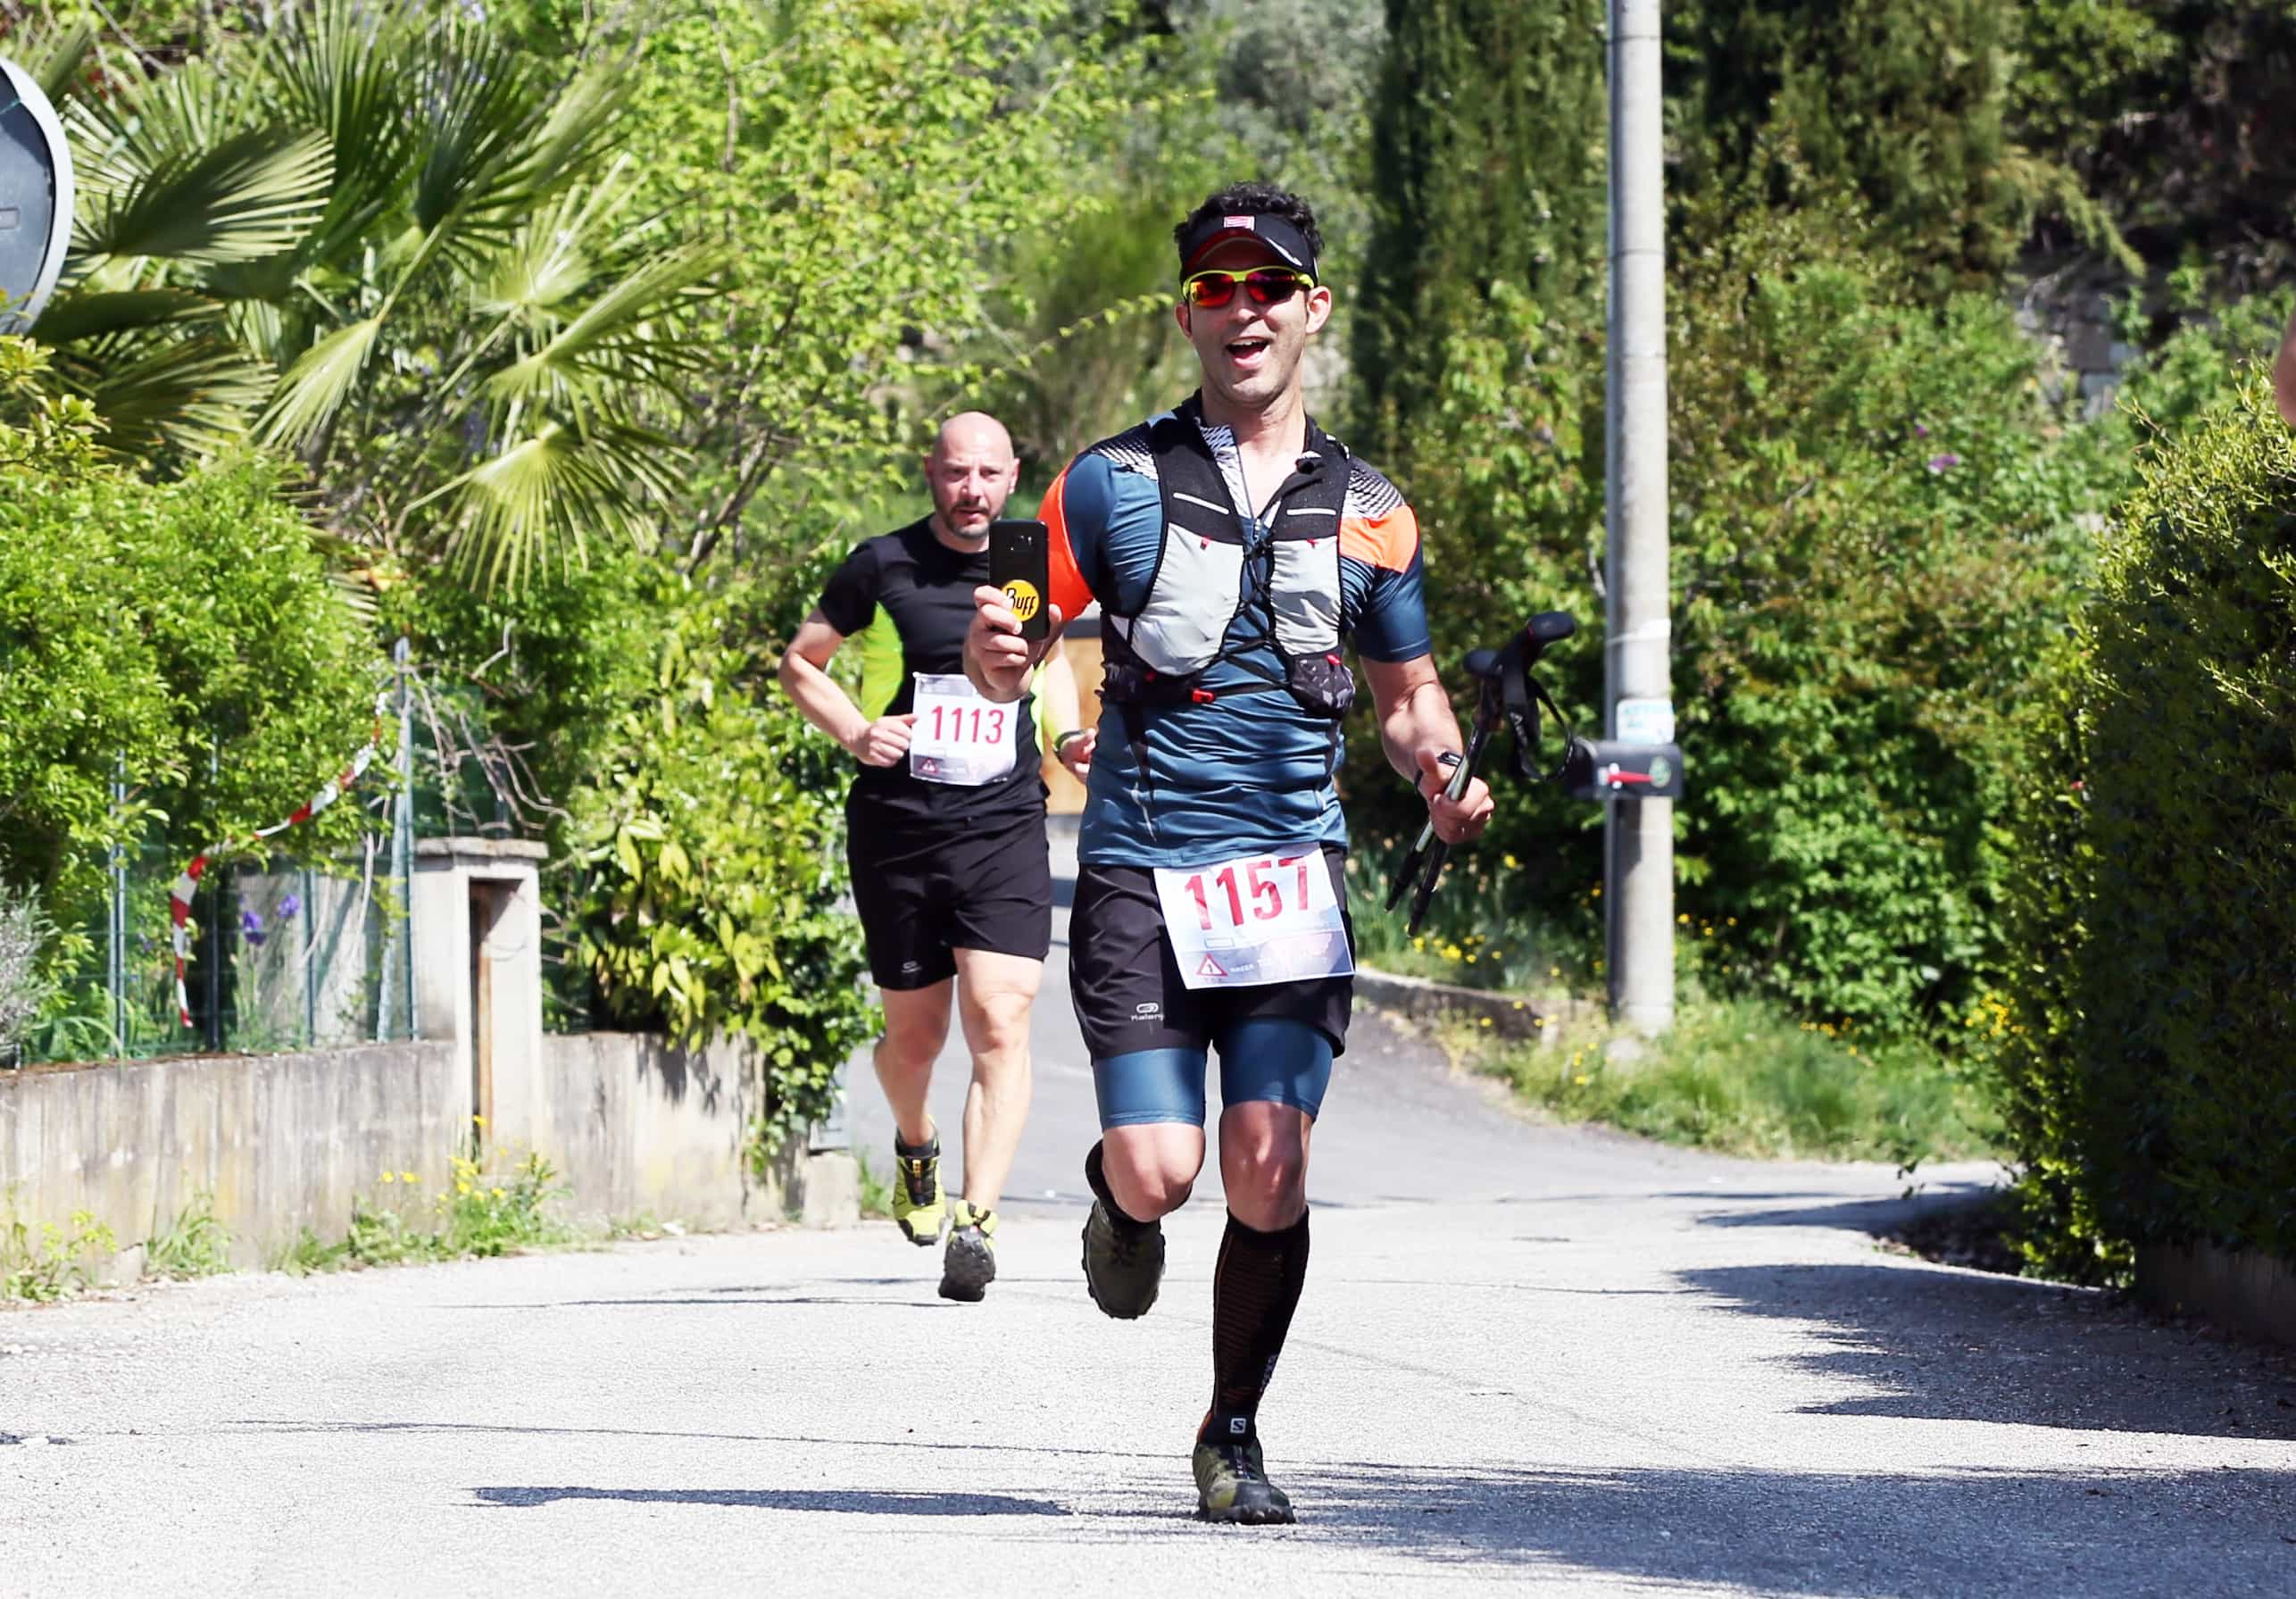 Runnerpercaso | TCE 2017 Finisher